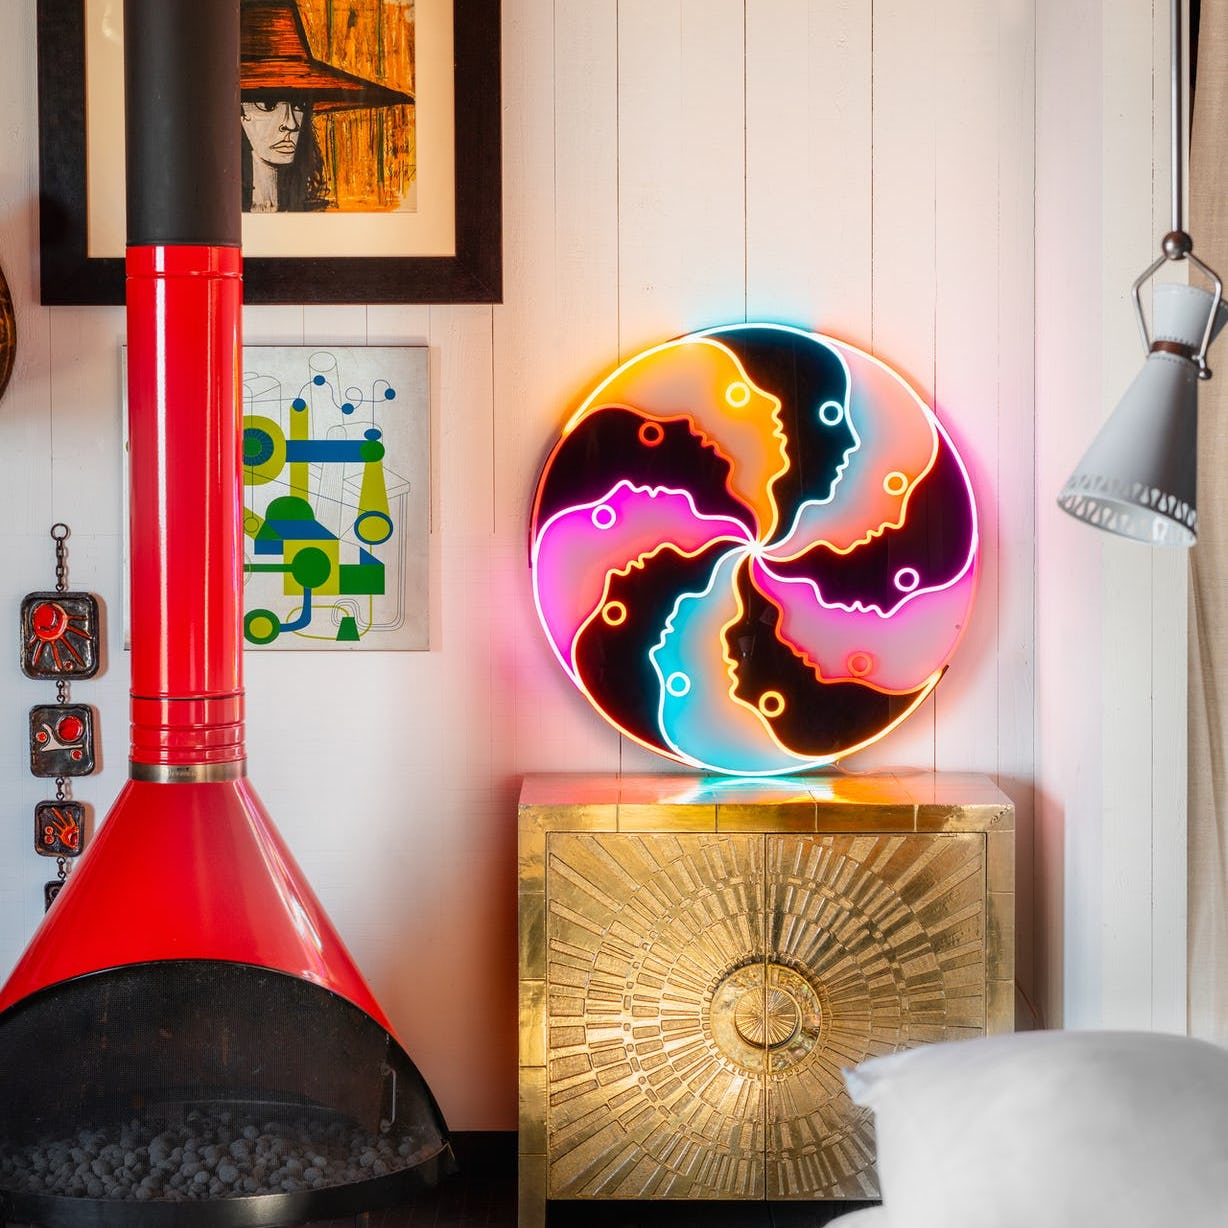 Fans Of Jonathan Adler's Quirky Designs Will Love His Latest Collab